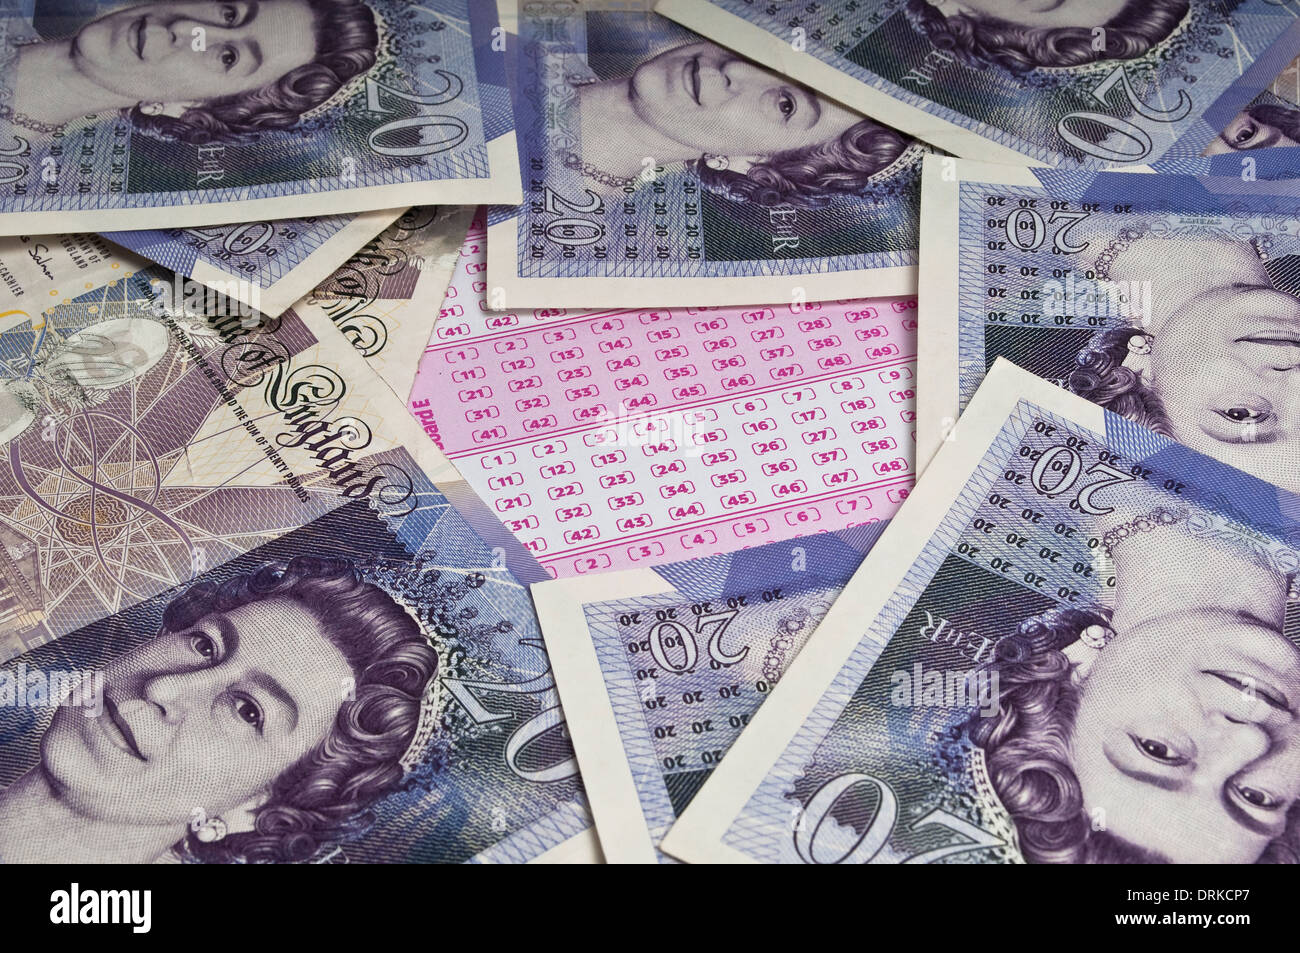 Blank lottery ticket in the middle of a pile of scattered twenty pound notes Stock Photo